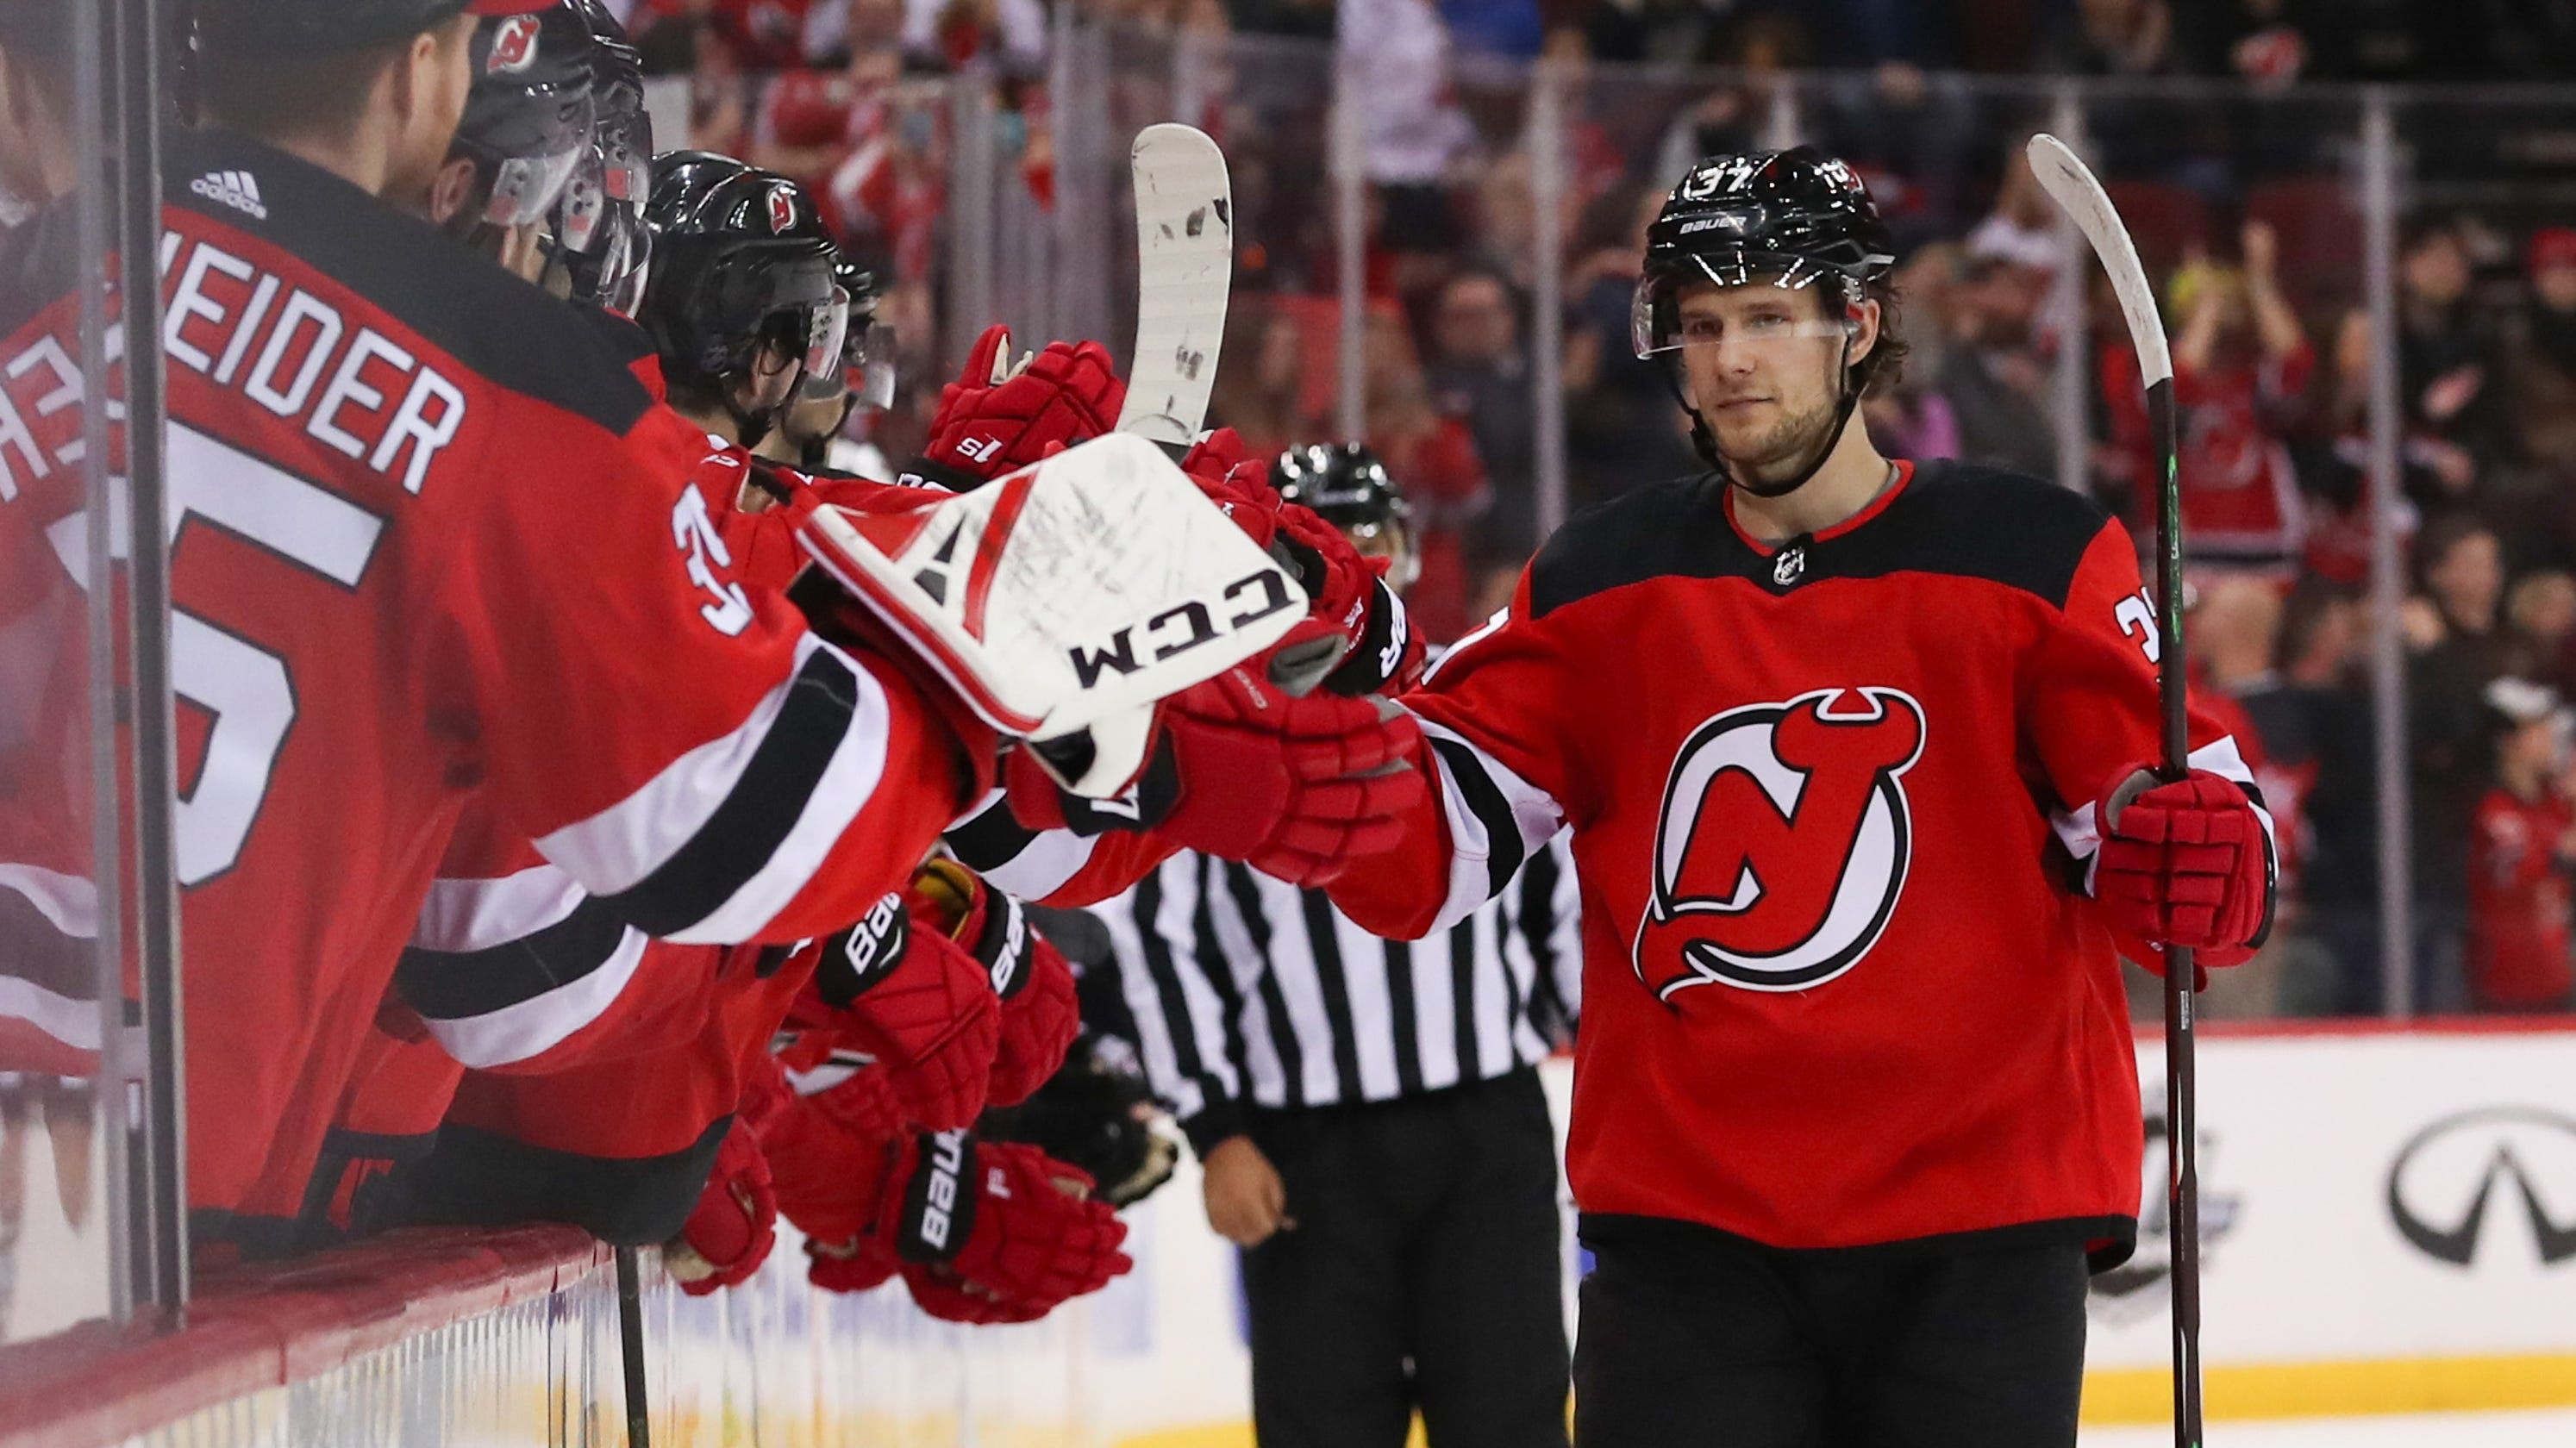 Pavel Zacha s shootout goal gives NJ Devils 2-1 win over Coyotes 49f34c0ca